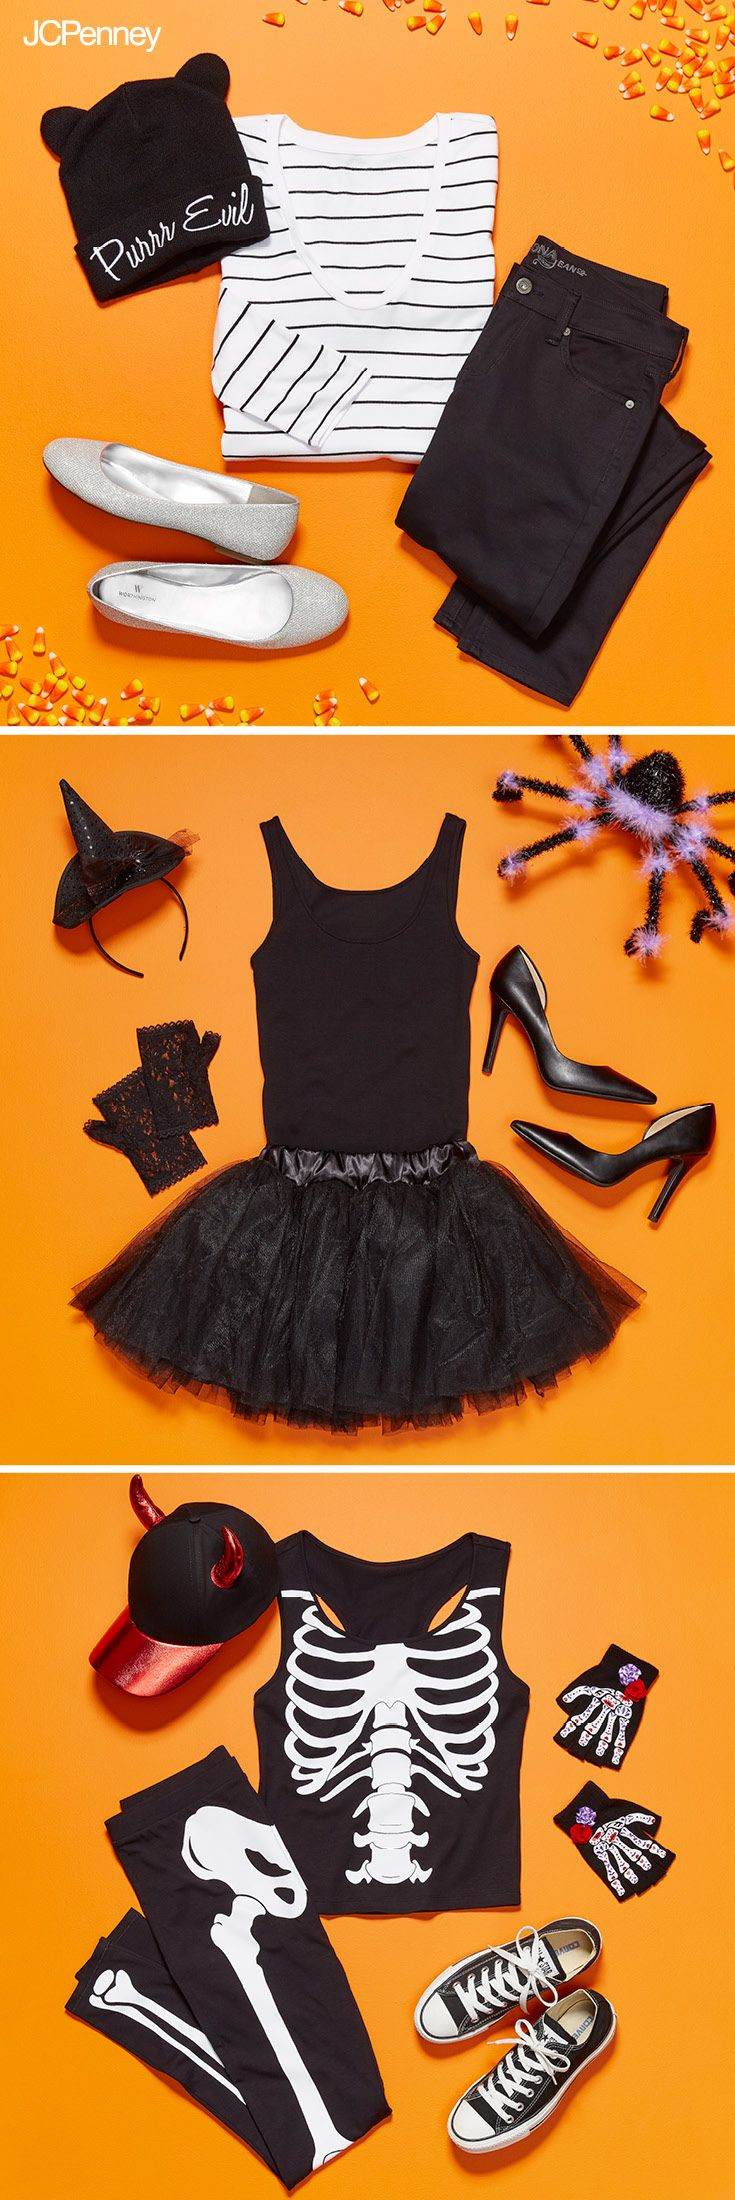 DIY Halloween costumes are so fun and easy to create. Start with black skinny jeans and add a stripe shirt then add Halloween accessories like cat ears for cat tail and you're ready to trick or treat with the kids right meow. Or go for a more dressed up DIY Halloween costume idea with a black skirt and top and just add a witches hat and lace gloves for a simple witch costume. Really get into the Halloween spirit with a skeleton costume using all black and white clothes or check out JCPenney.